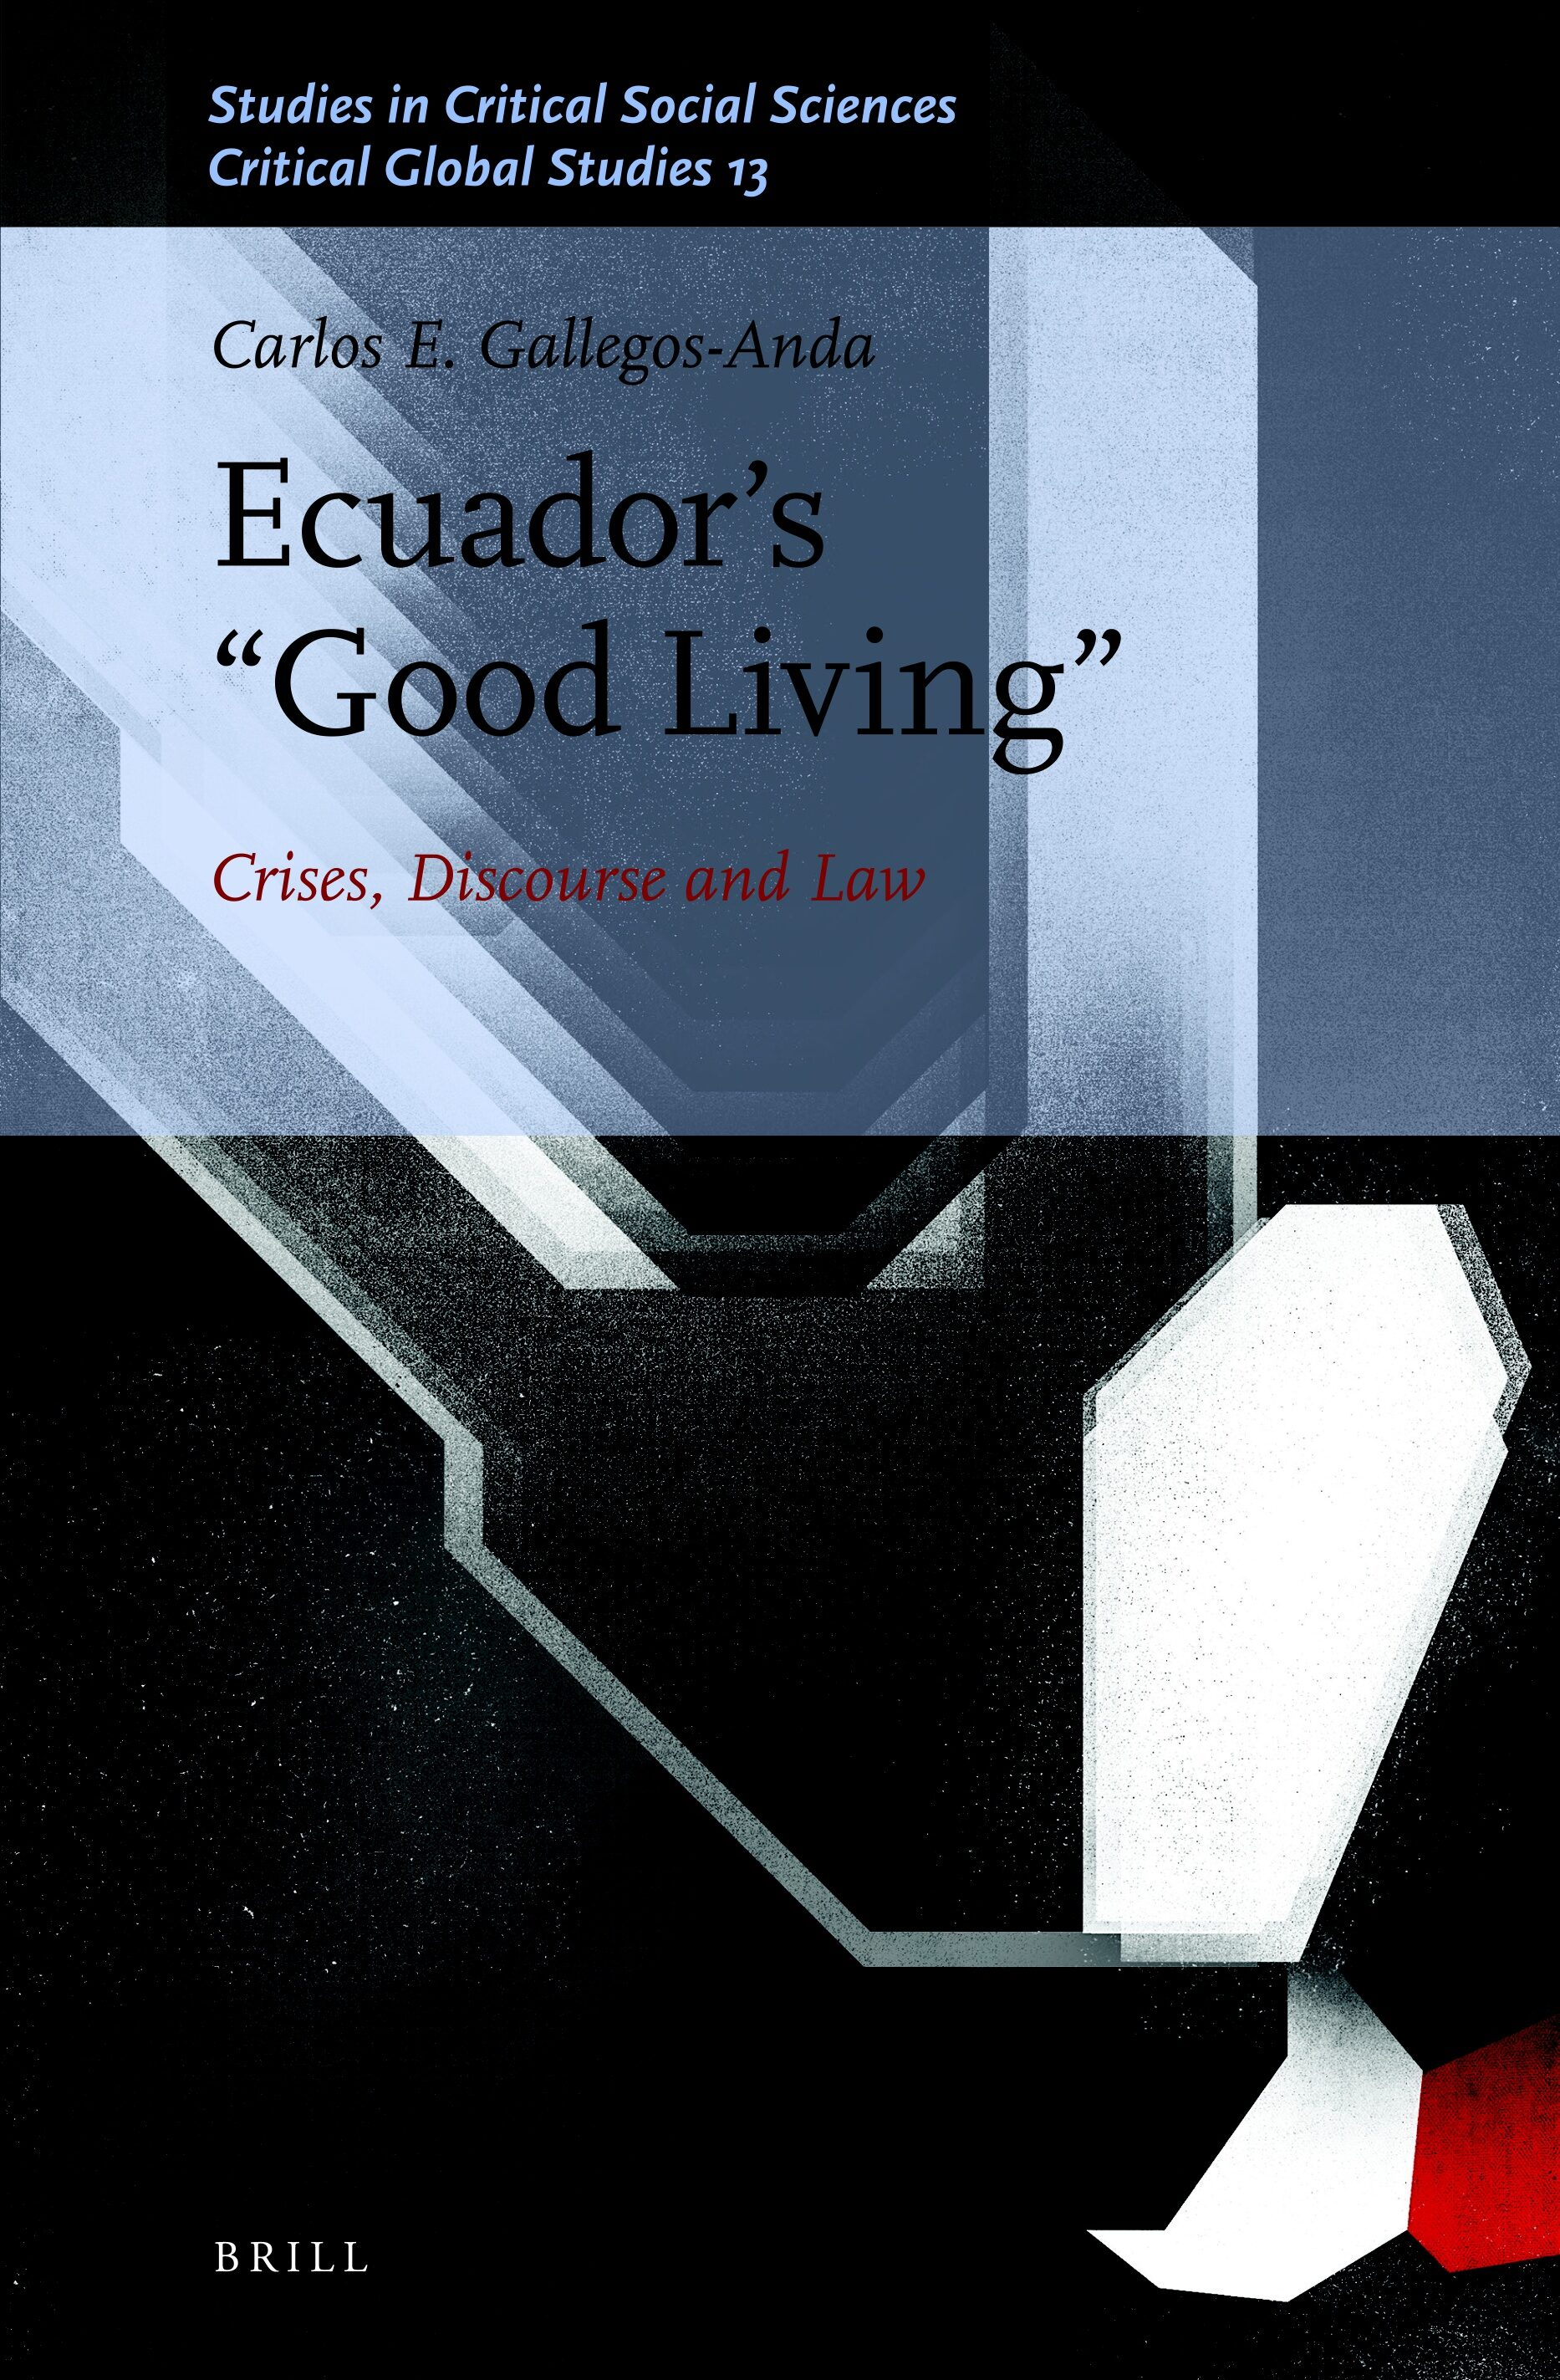 Chapter 20 Good Living in the Academic Literature in Ecuador's ...